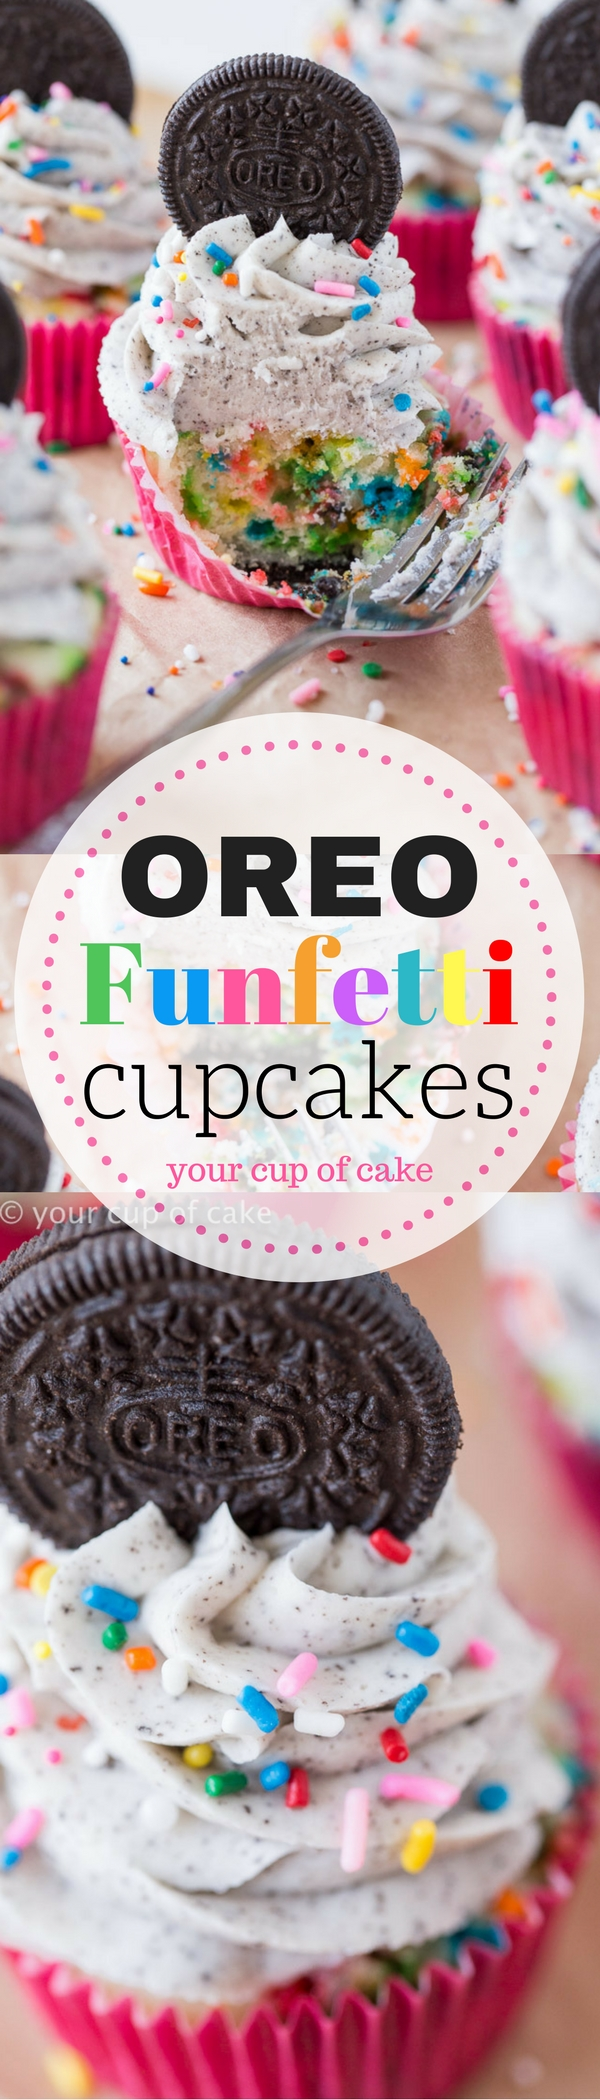 Oreo Funfetti Cupcakes with an Oreo baked into the bottom! Perfect for any party and super easy to make!